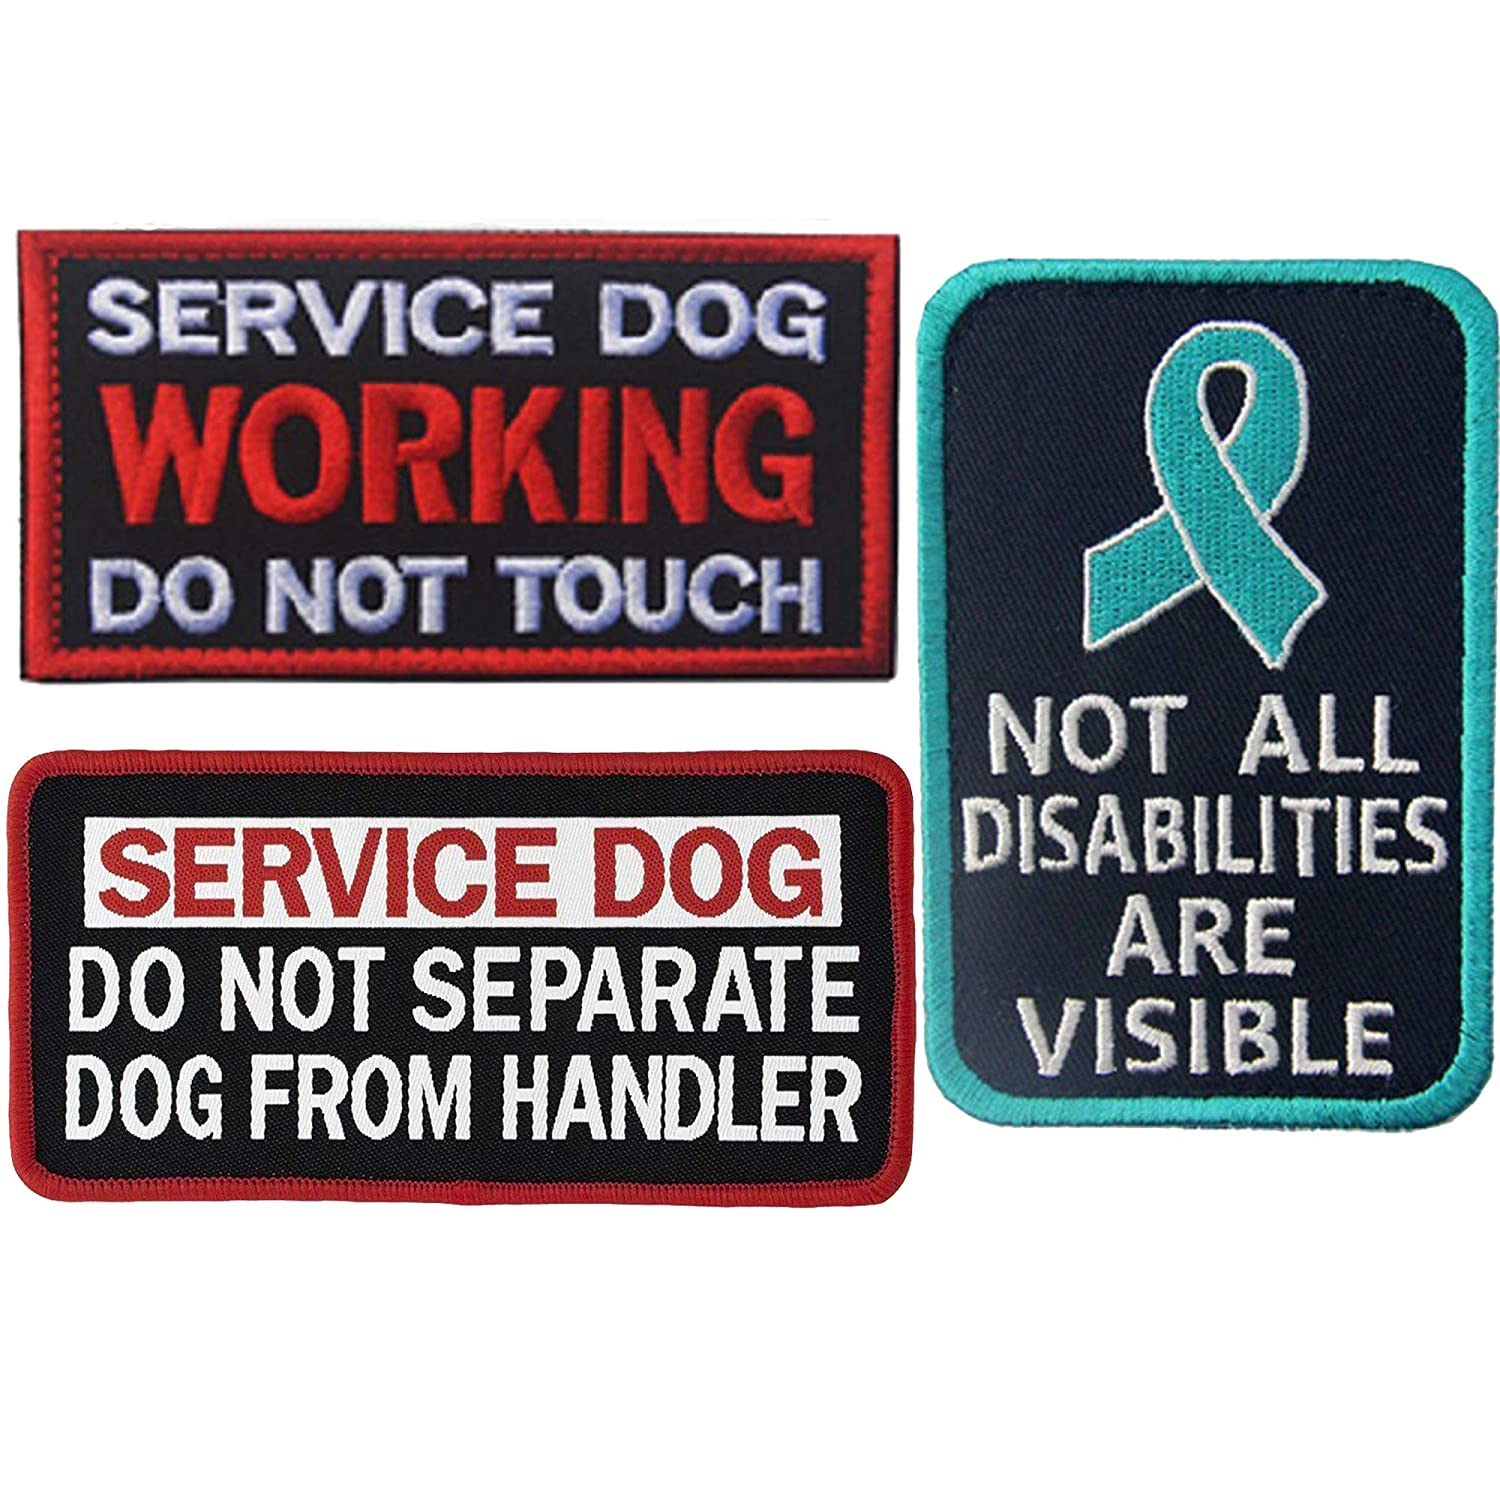 J Not All Disabilities are Visible, Do Not Separate Dog from Handler, Service Dog Working Do Not Touch Emblem Embroidered Fastener Hook & Loop Patch Appliques Badges for Vest Harnesses, Leashes 3PCS